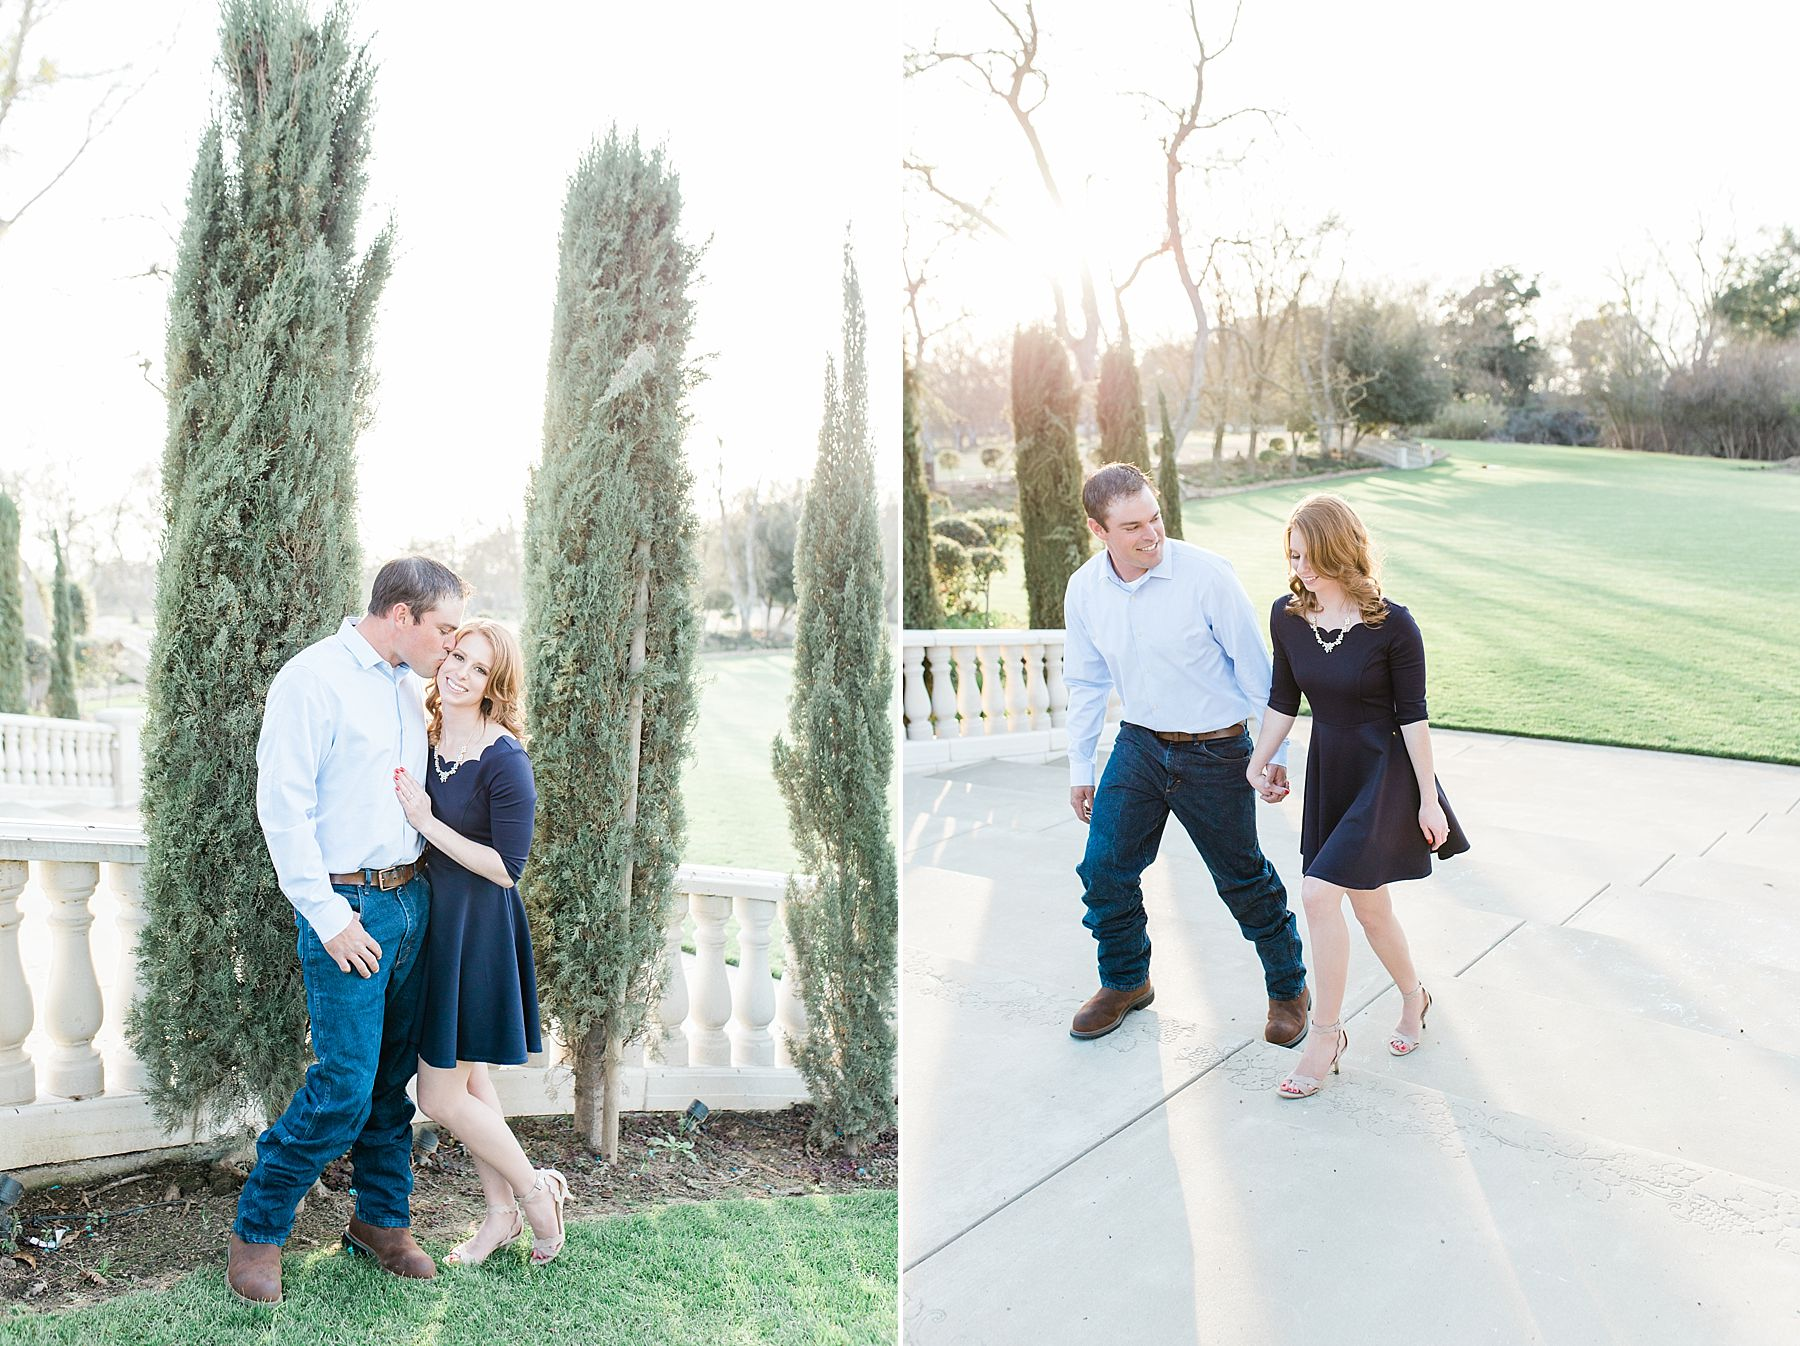 Viaggio Winery Engagement Session - Liz and TJ - Lodi Winery Wedding Photographer_0018.jpg